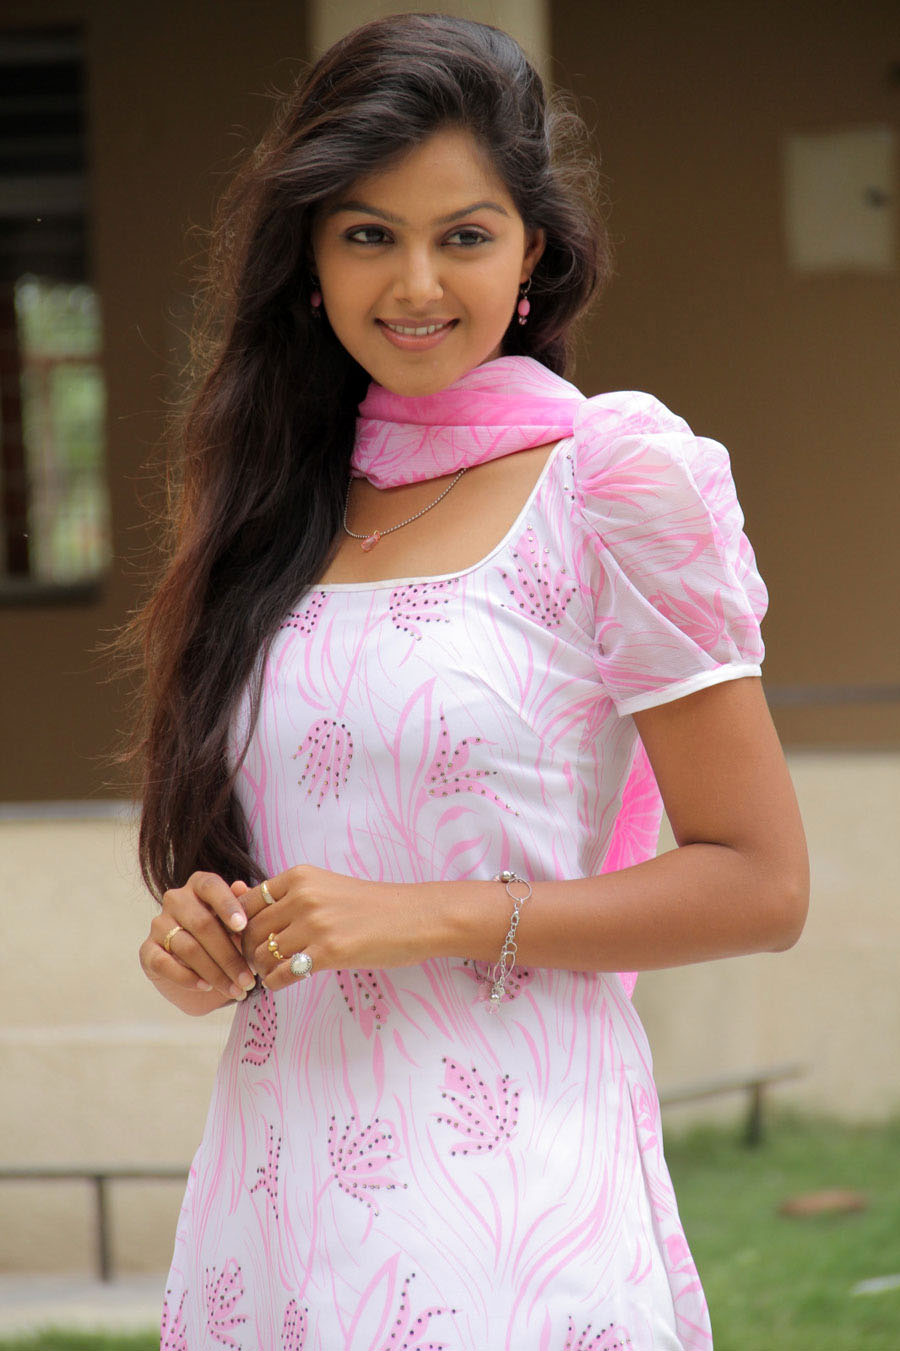 girl-south-indian-young-girl-top